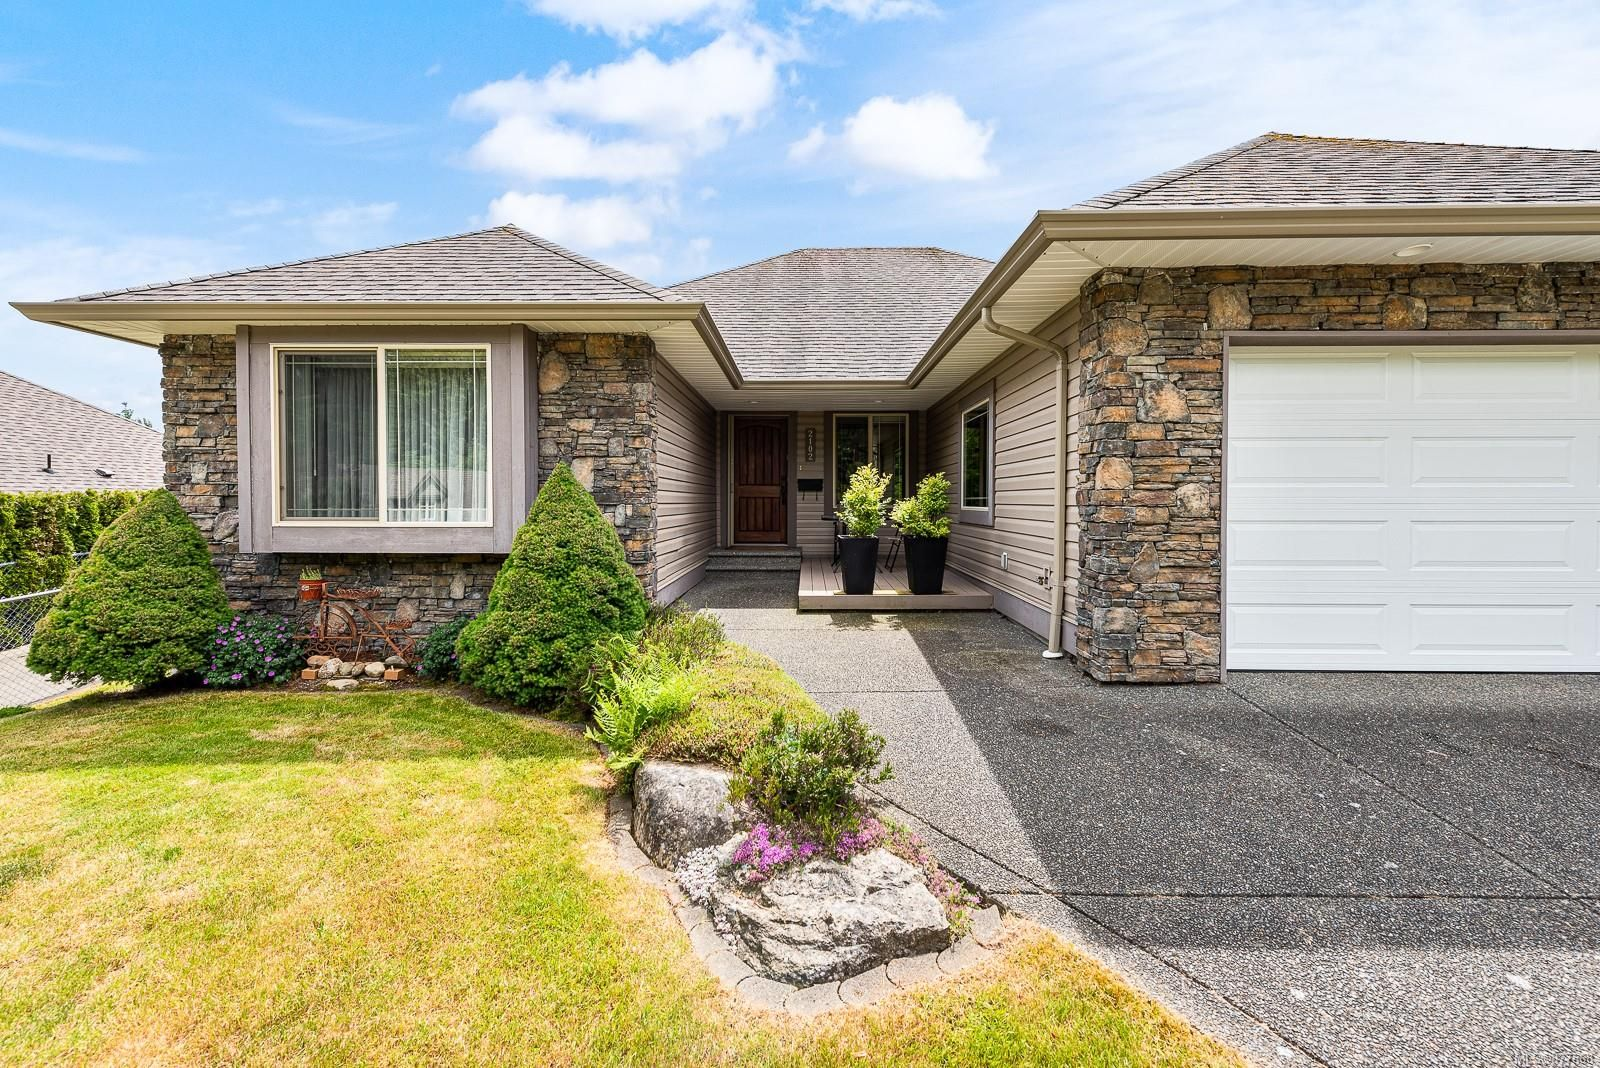 Main Photo: 2102 Robert Lang Dr in : CV Courtenay City House for sale (Comox Valley)  : MLS®# 877668